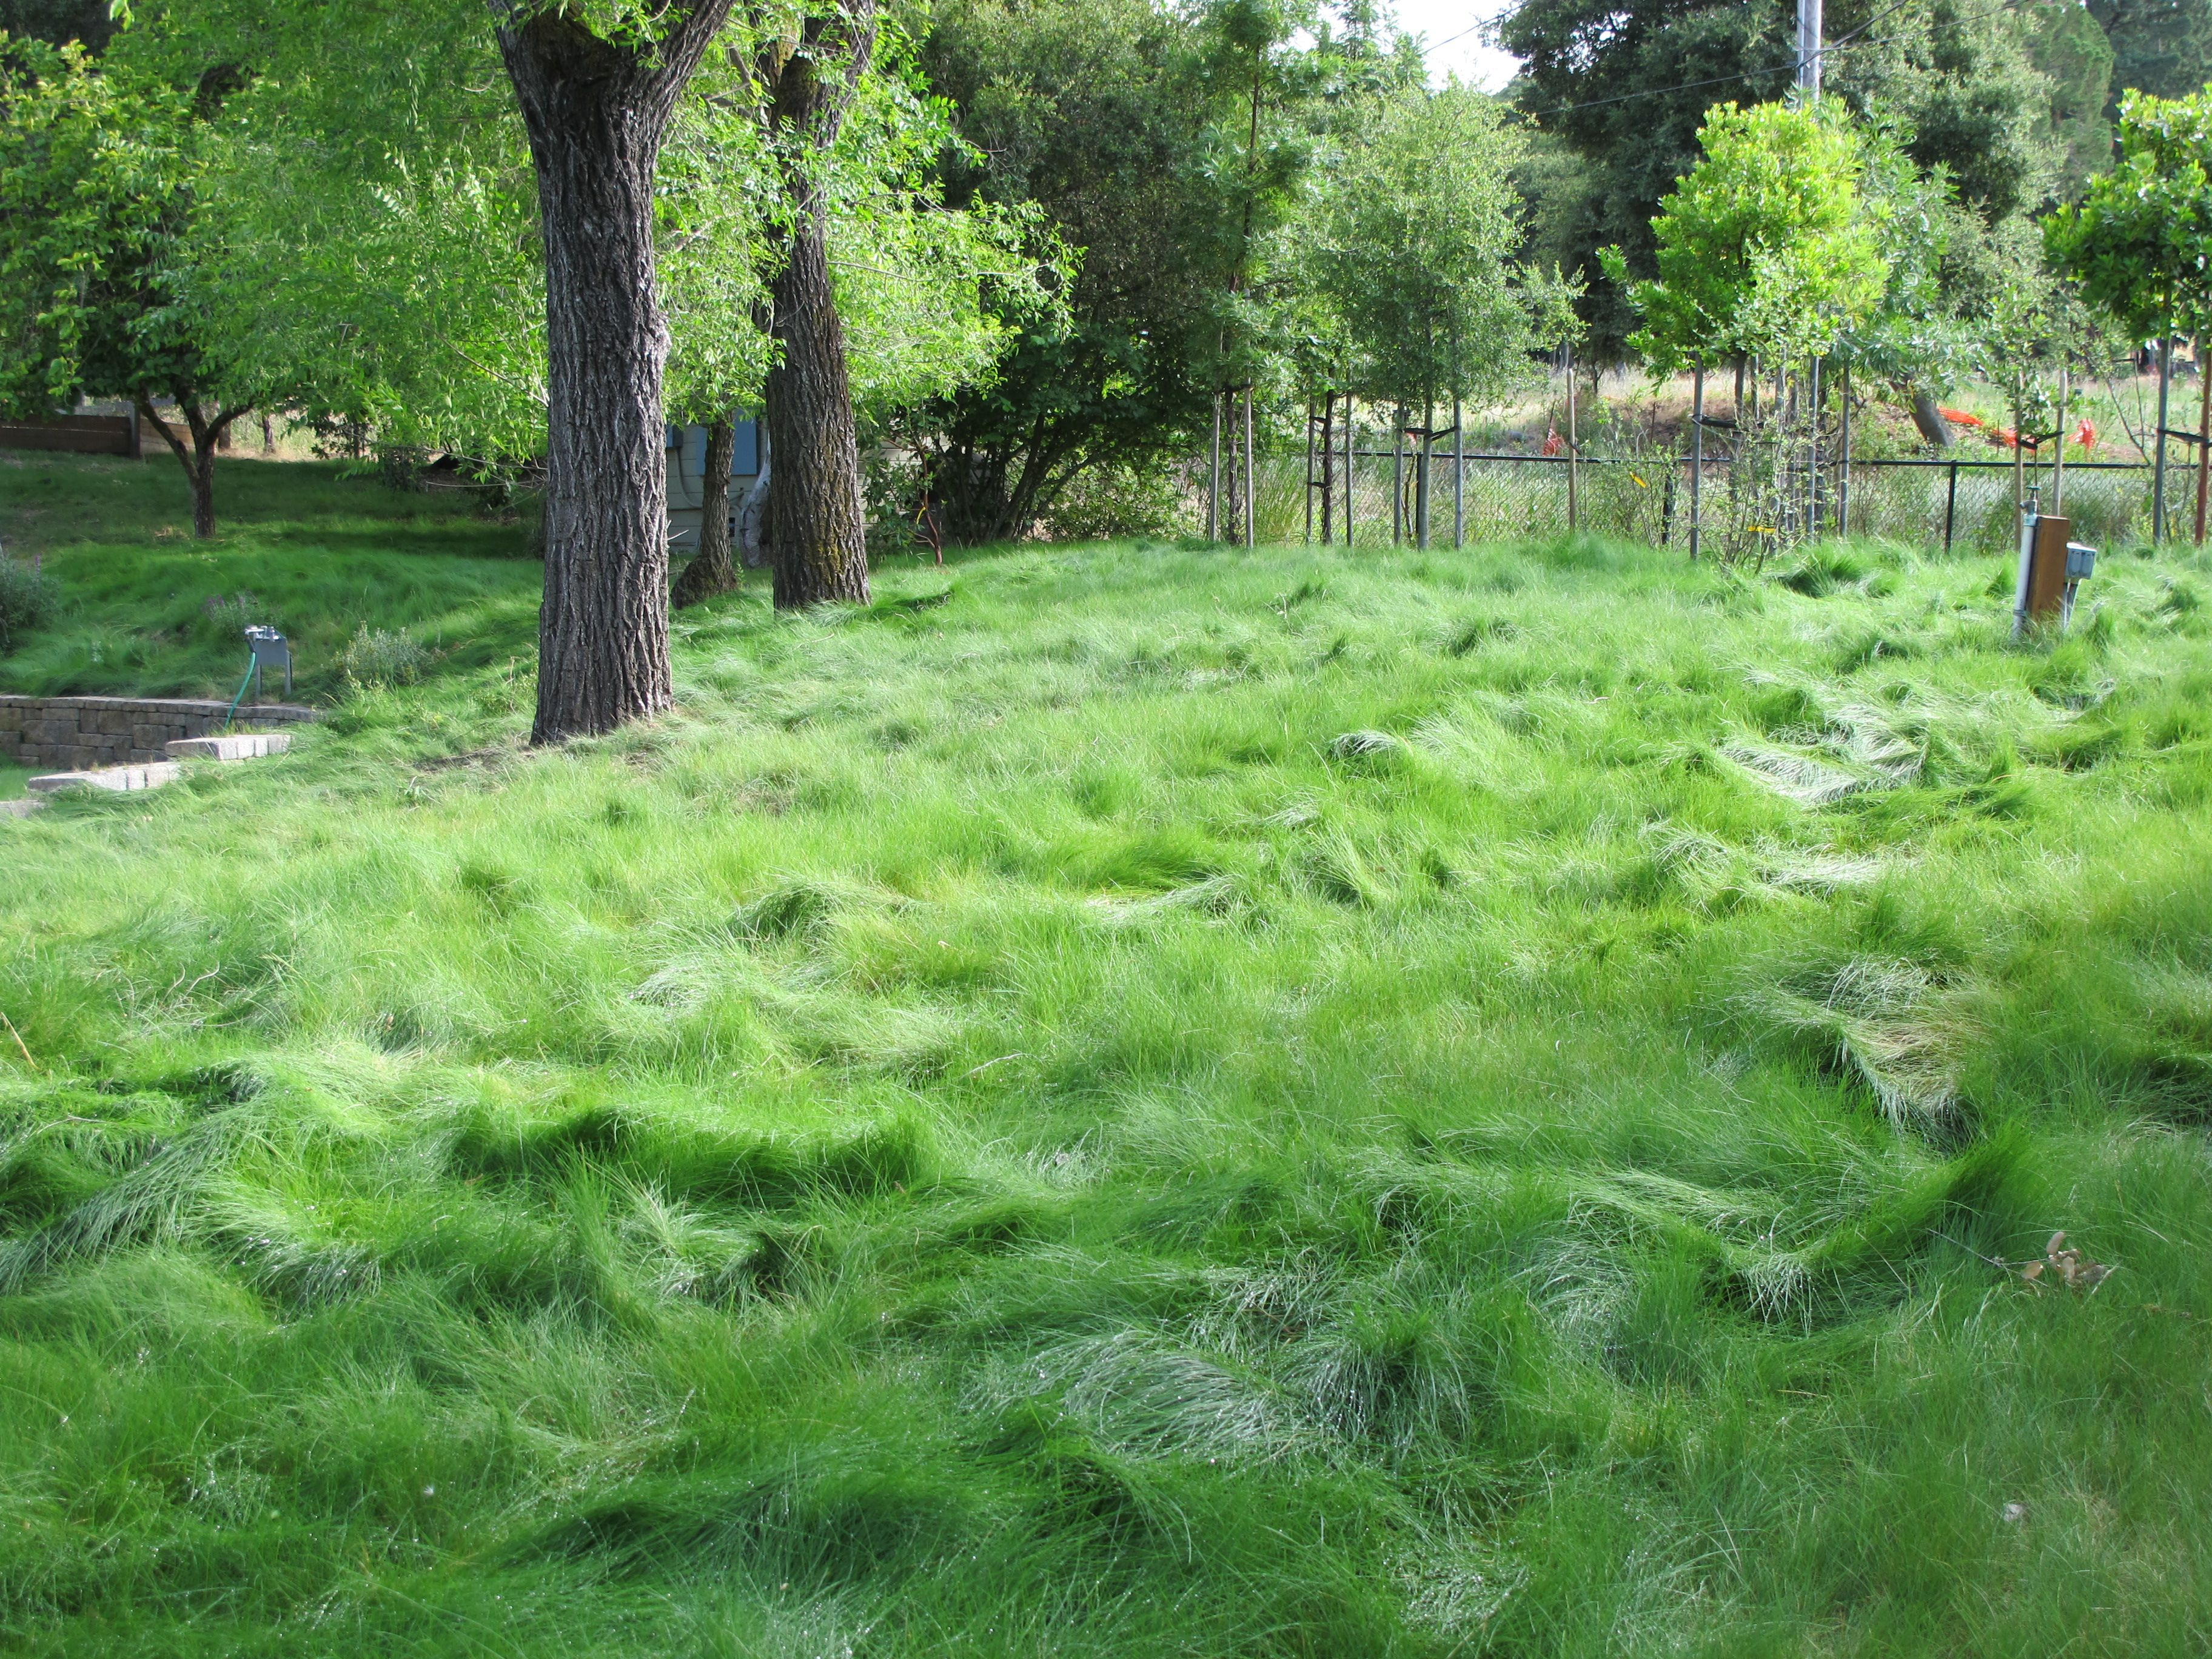 how long does grass take to grow after mowing